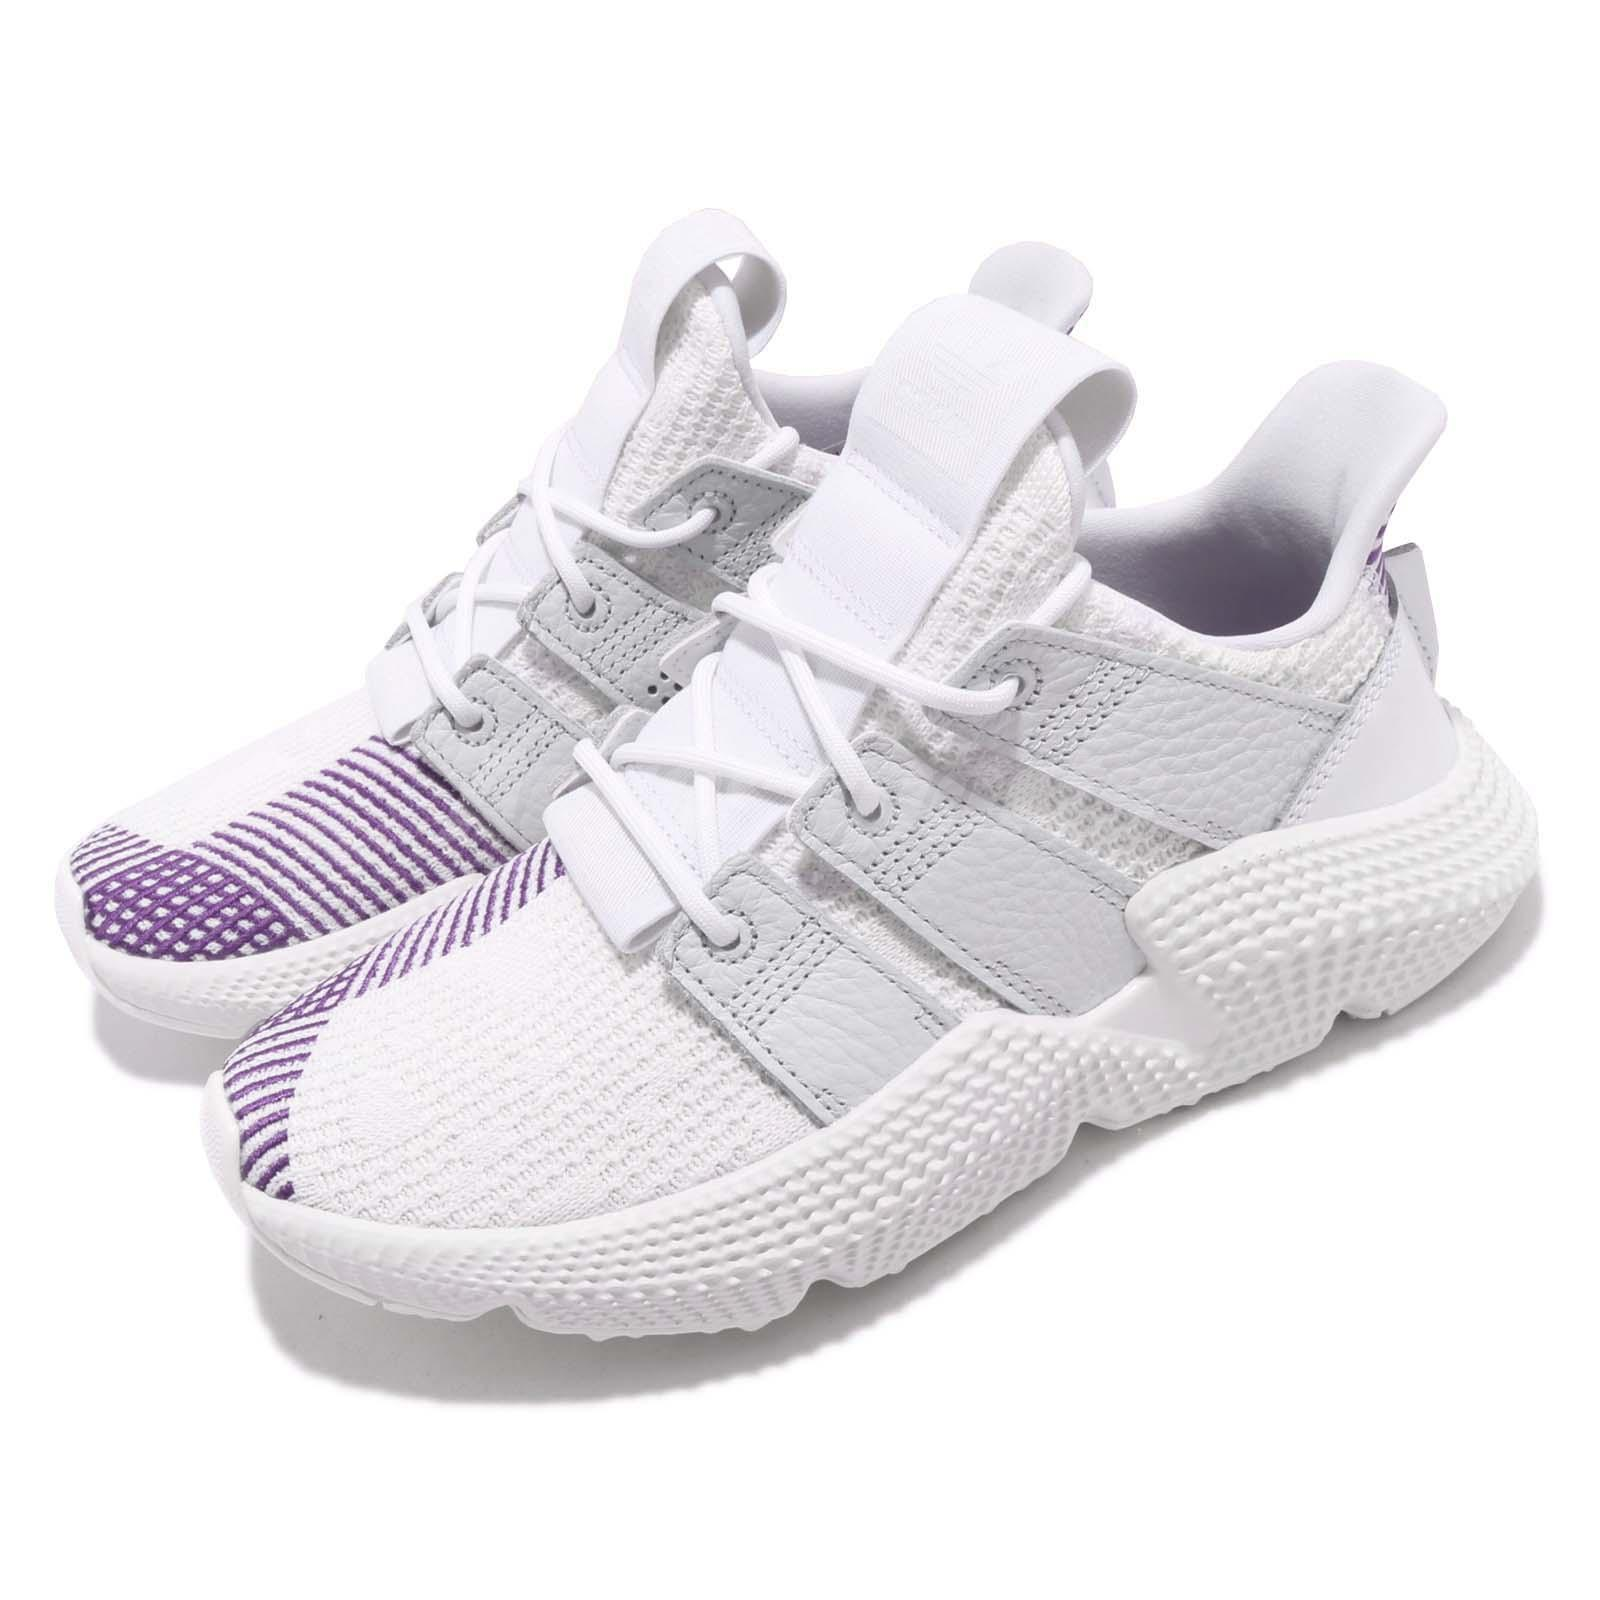 Details about adidas Originals Prophere W White Purple Women Running Shoes  Sneakers CG6260